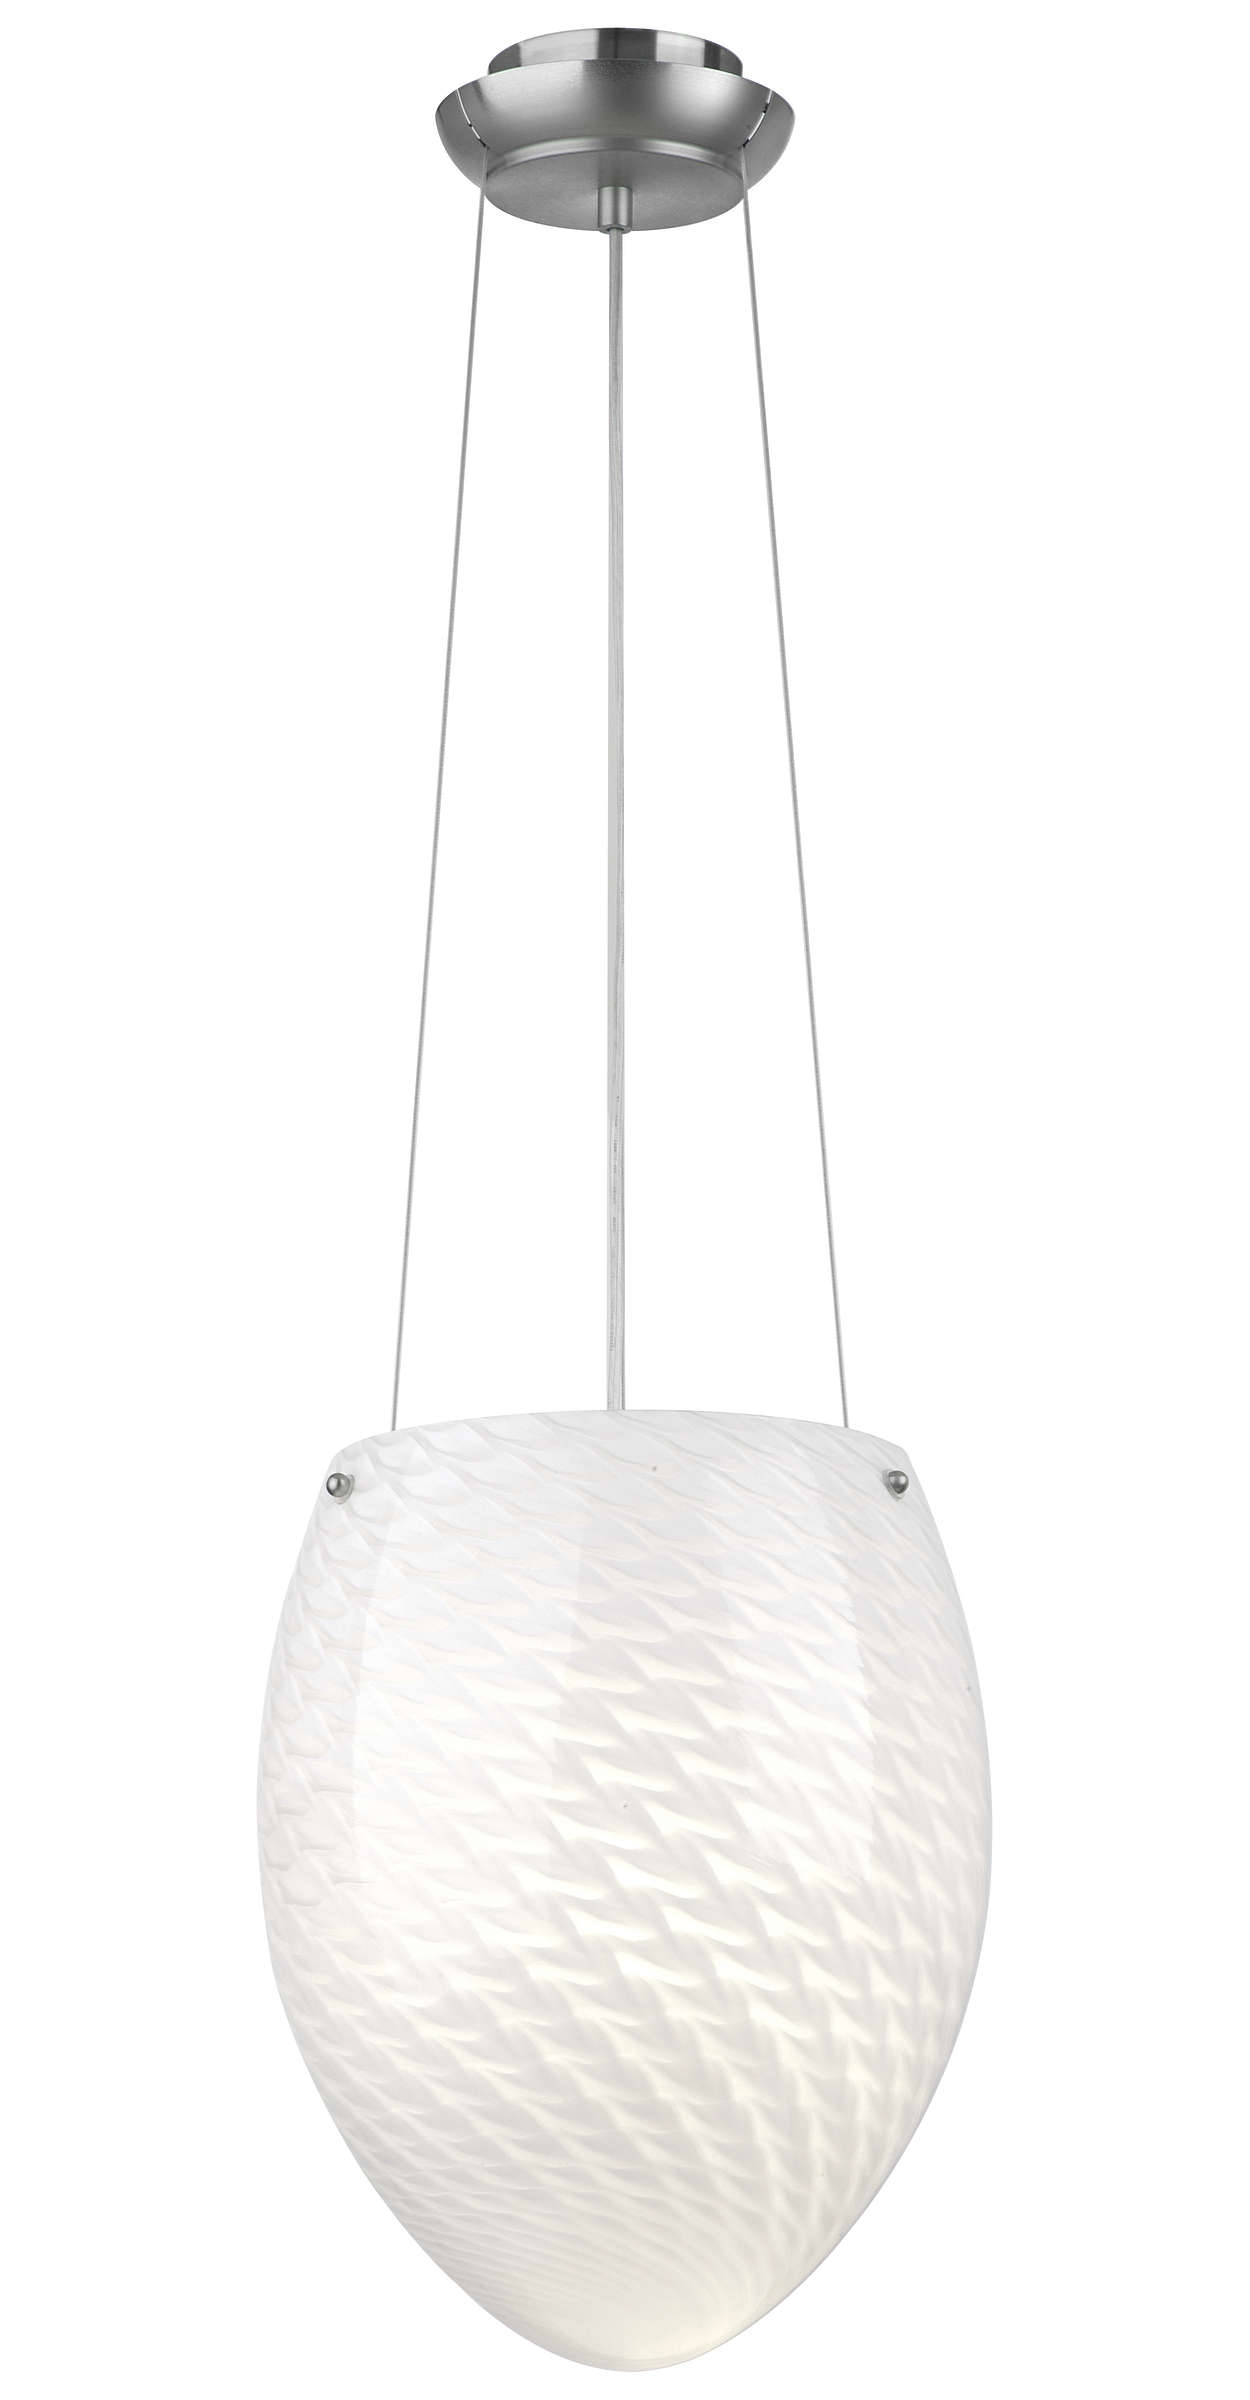 Margaret 1-light Pendant in Satin Nickel finish